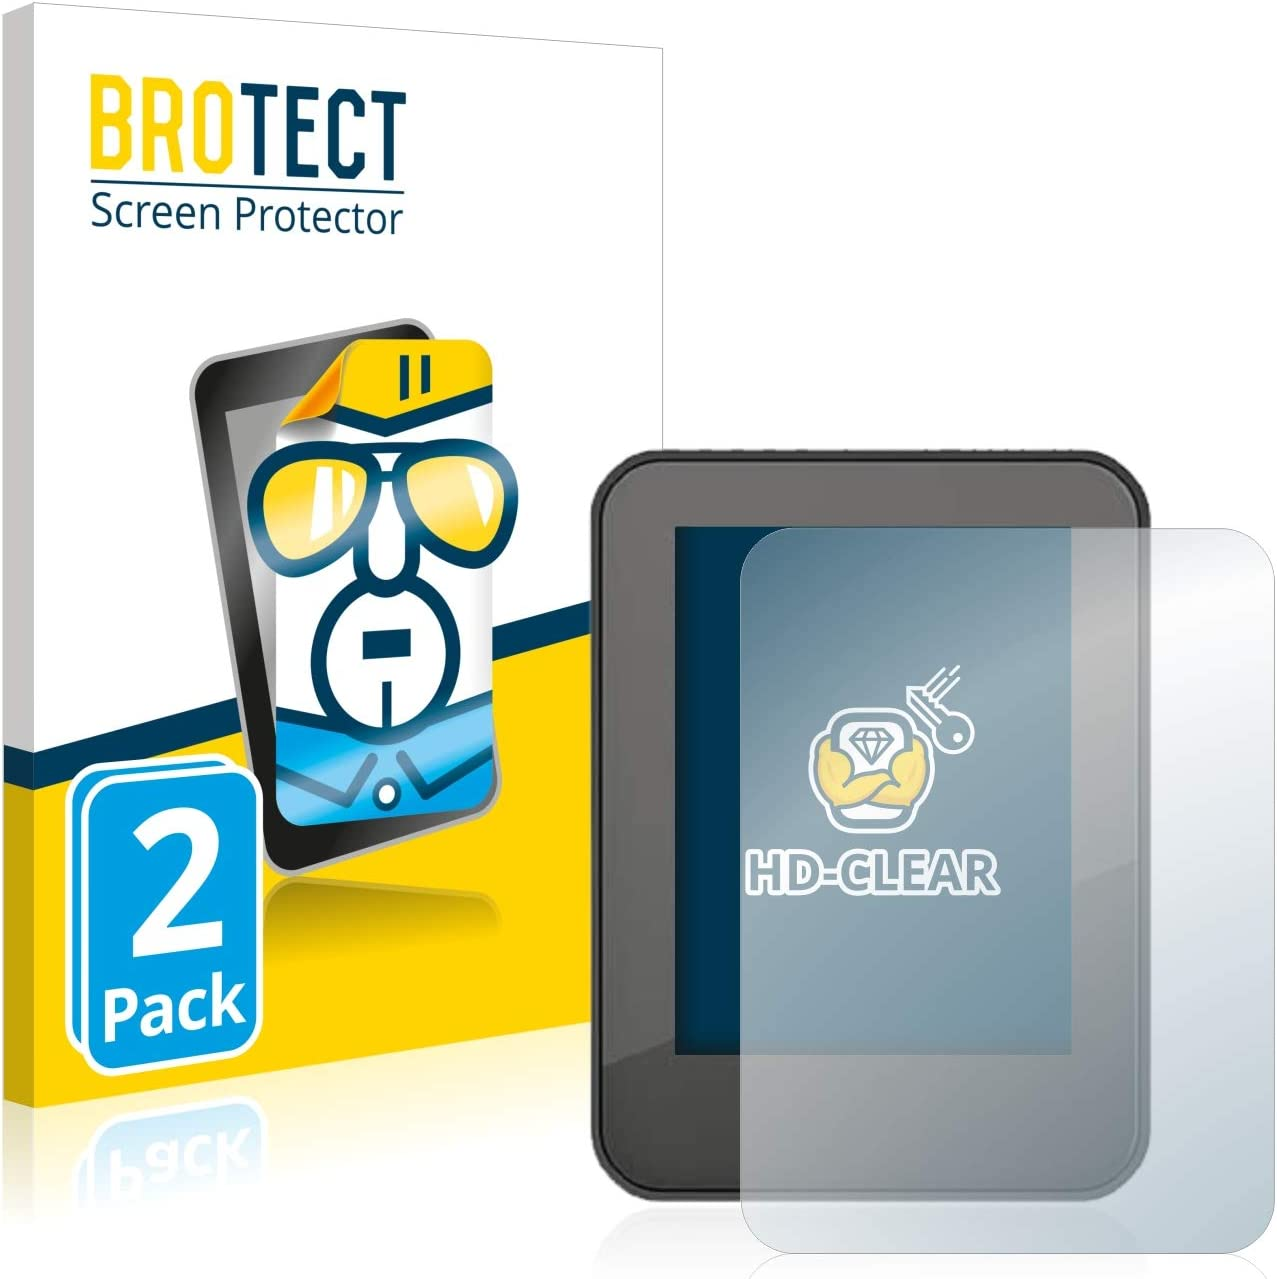 Crystal-Clear Dirt-Repellent 2X HD-Clear Screen Protector for Neodrives neoMMI Z20 BROTECT Hard-Coated